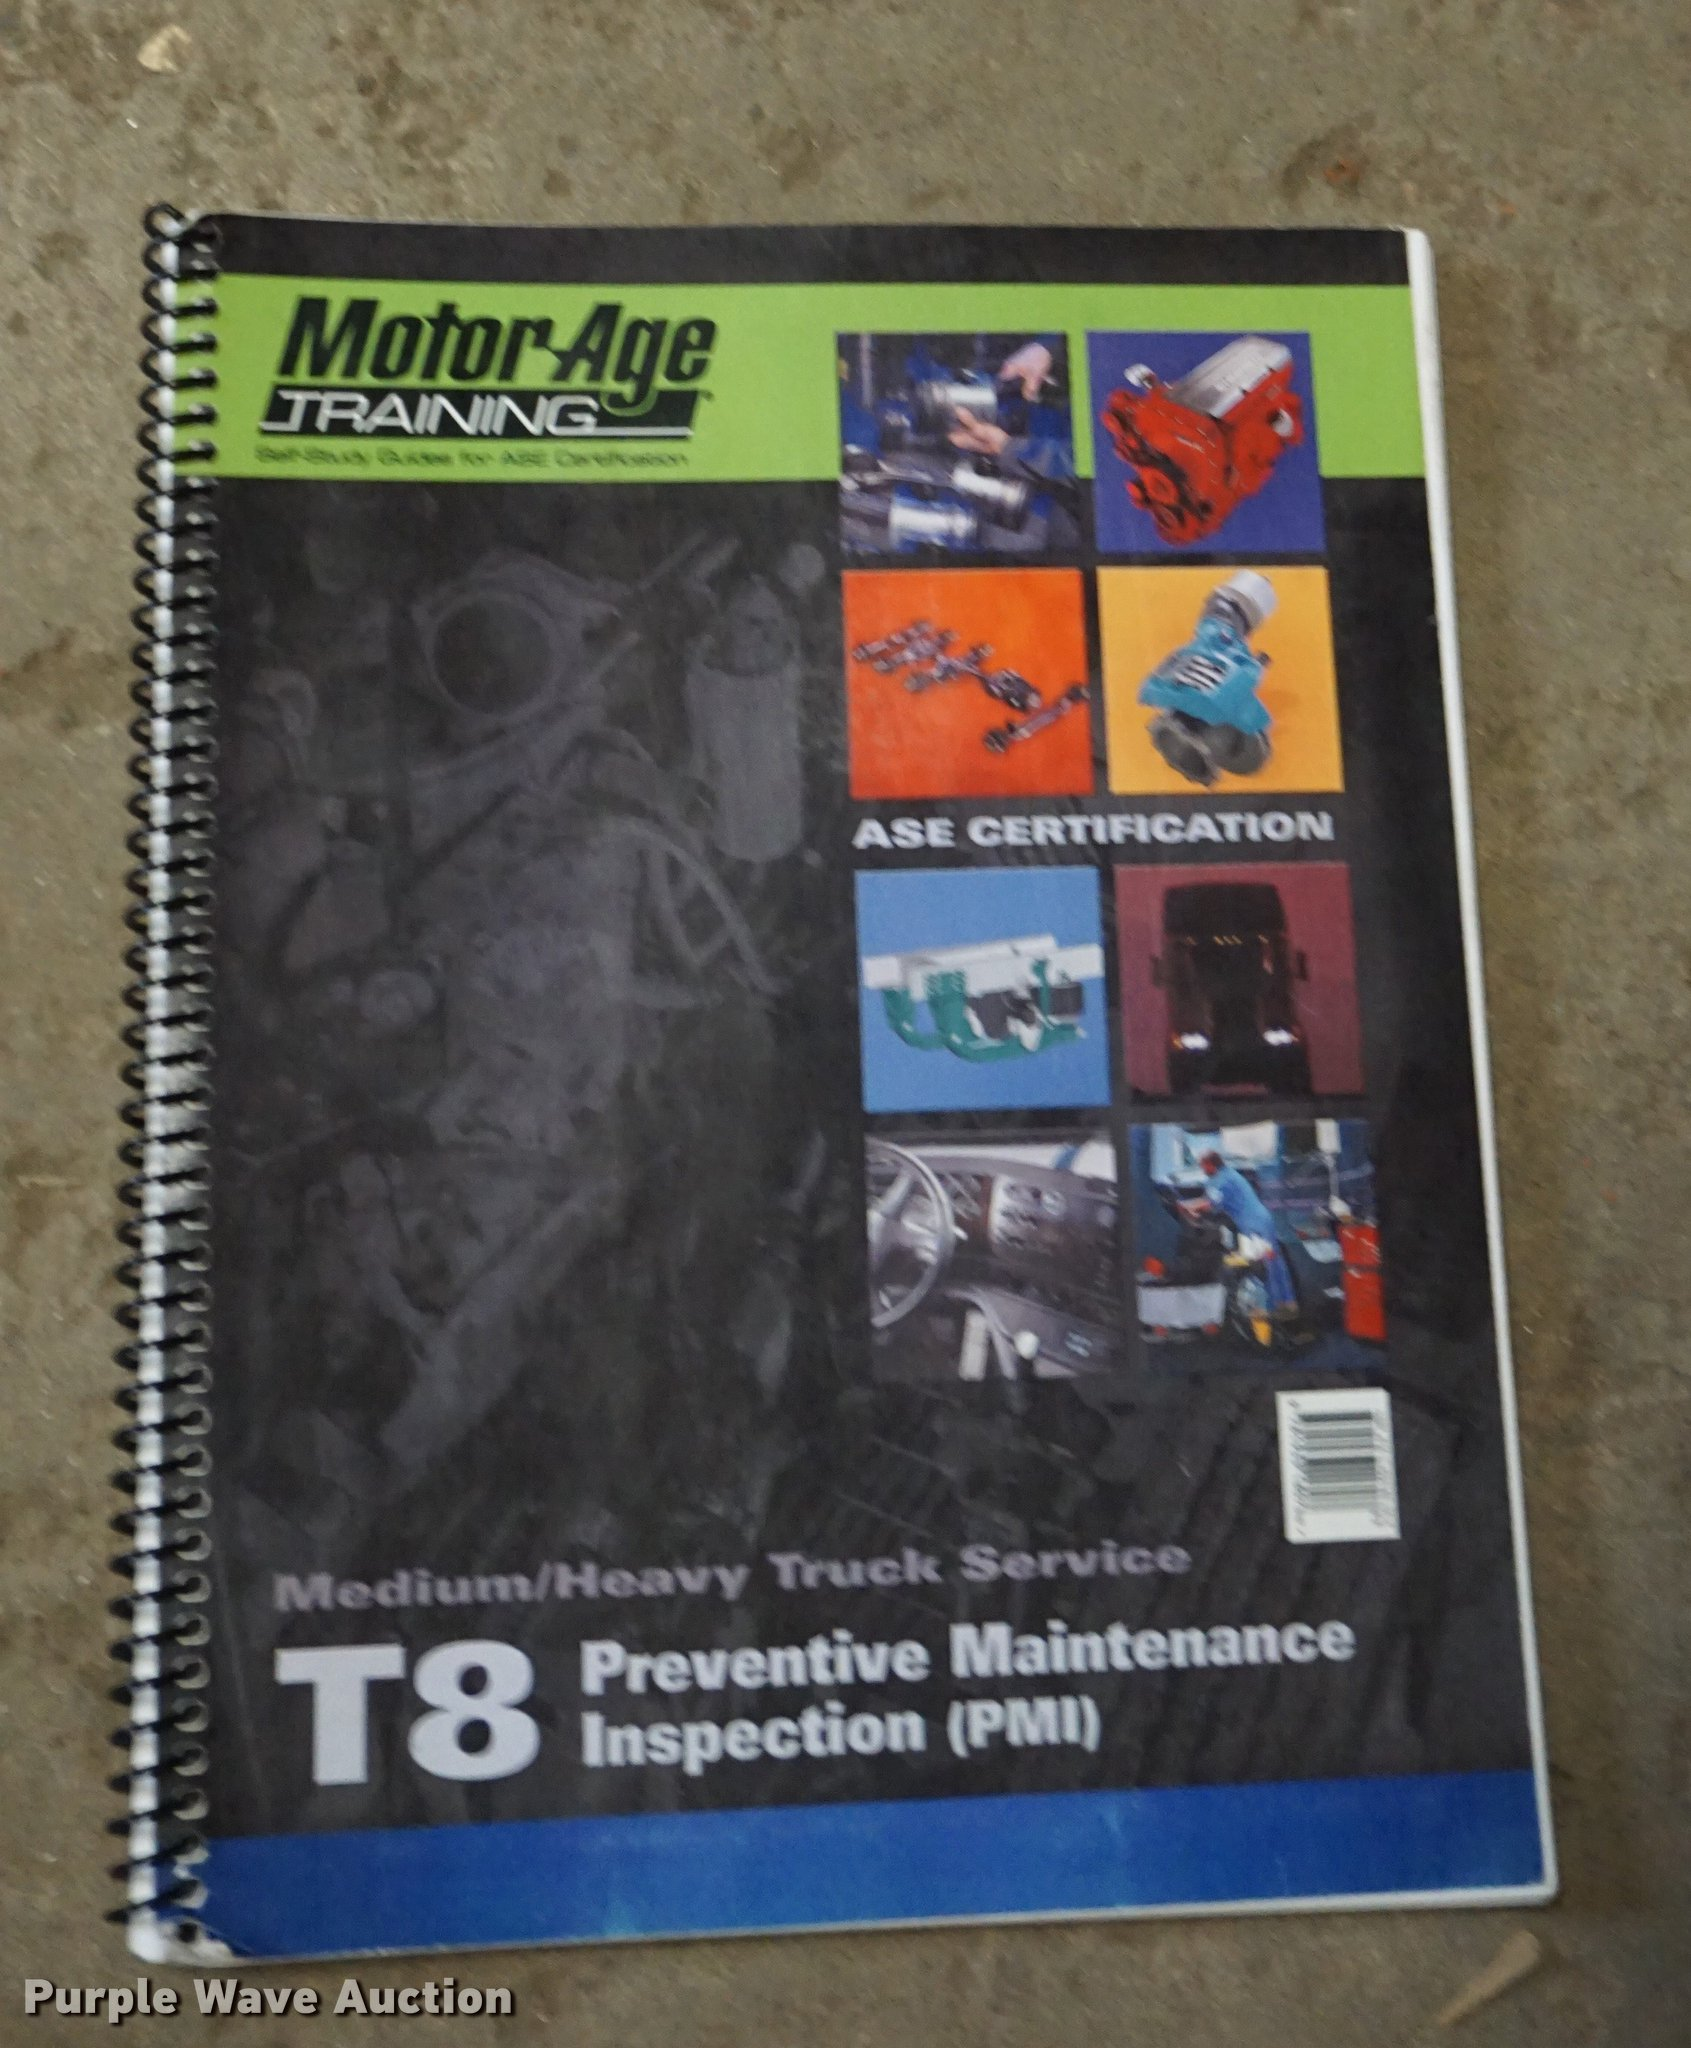 ase kansas certification guides study self sold auction